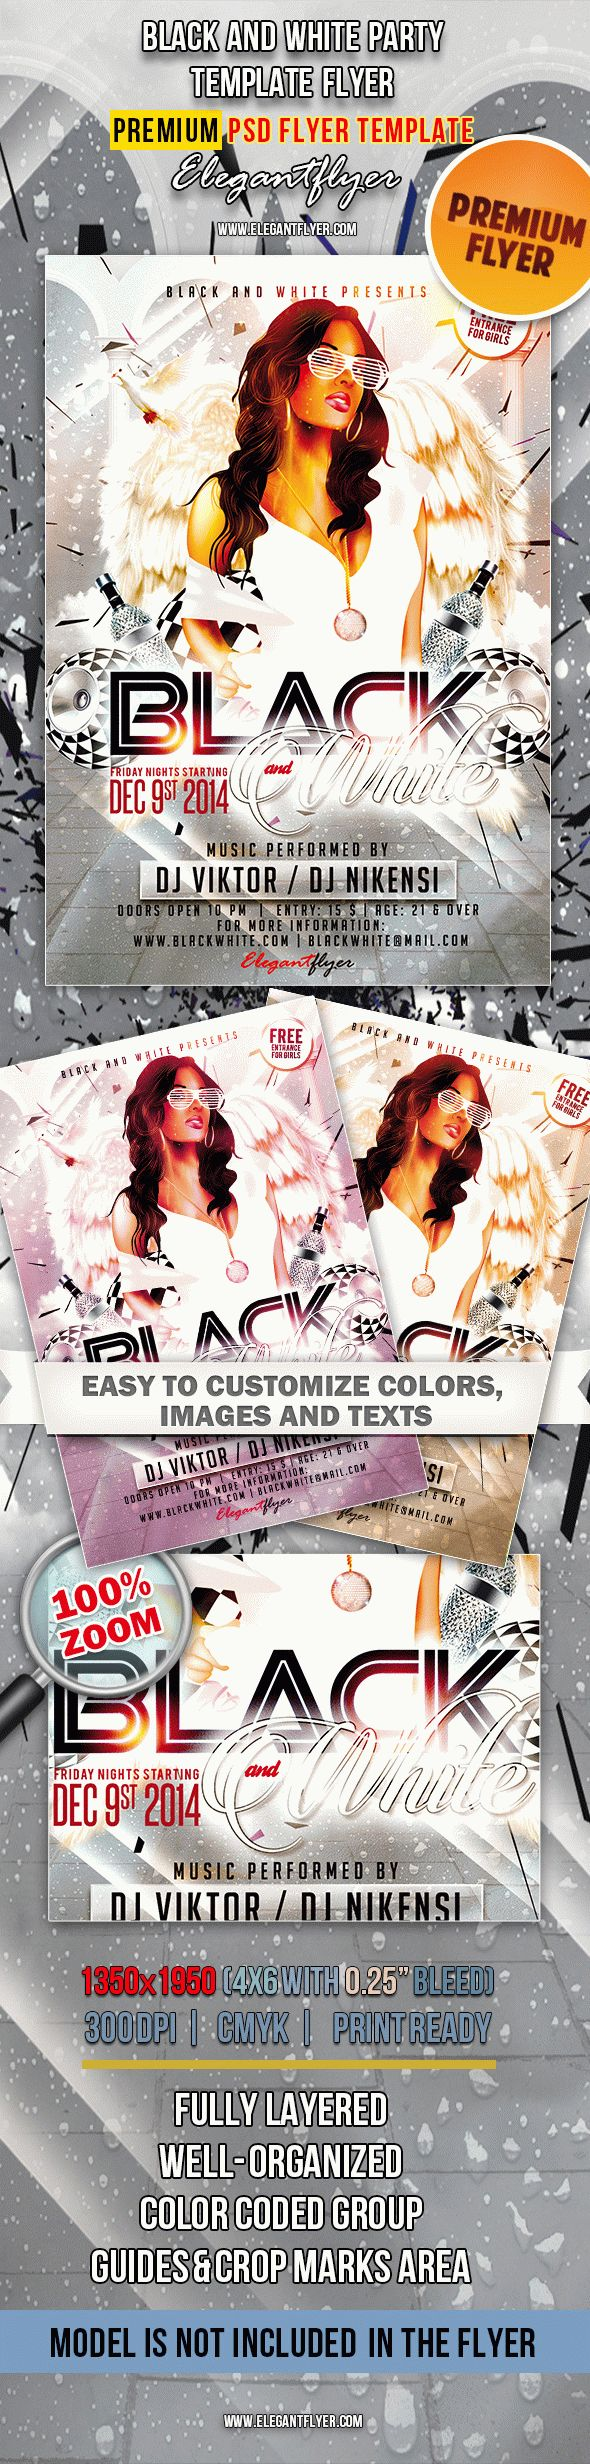 black and white party flyer in psd by elegantflyer. Black Bedroom Furniture Sets. Home Design Ideas